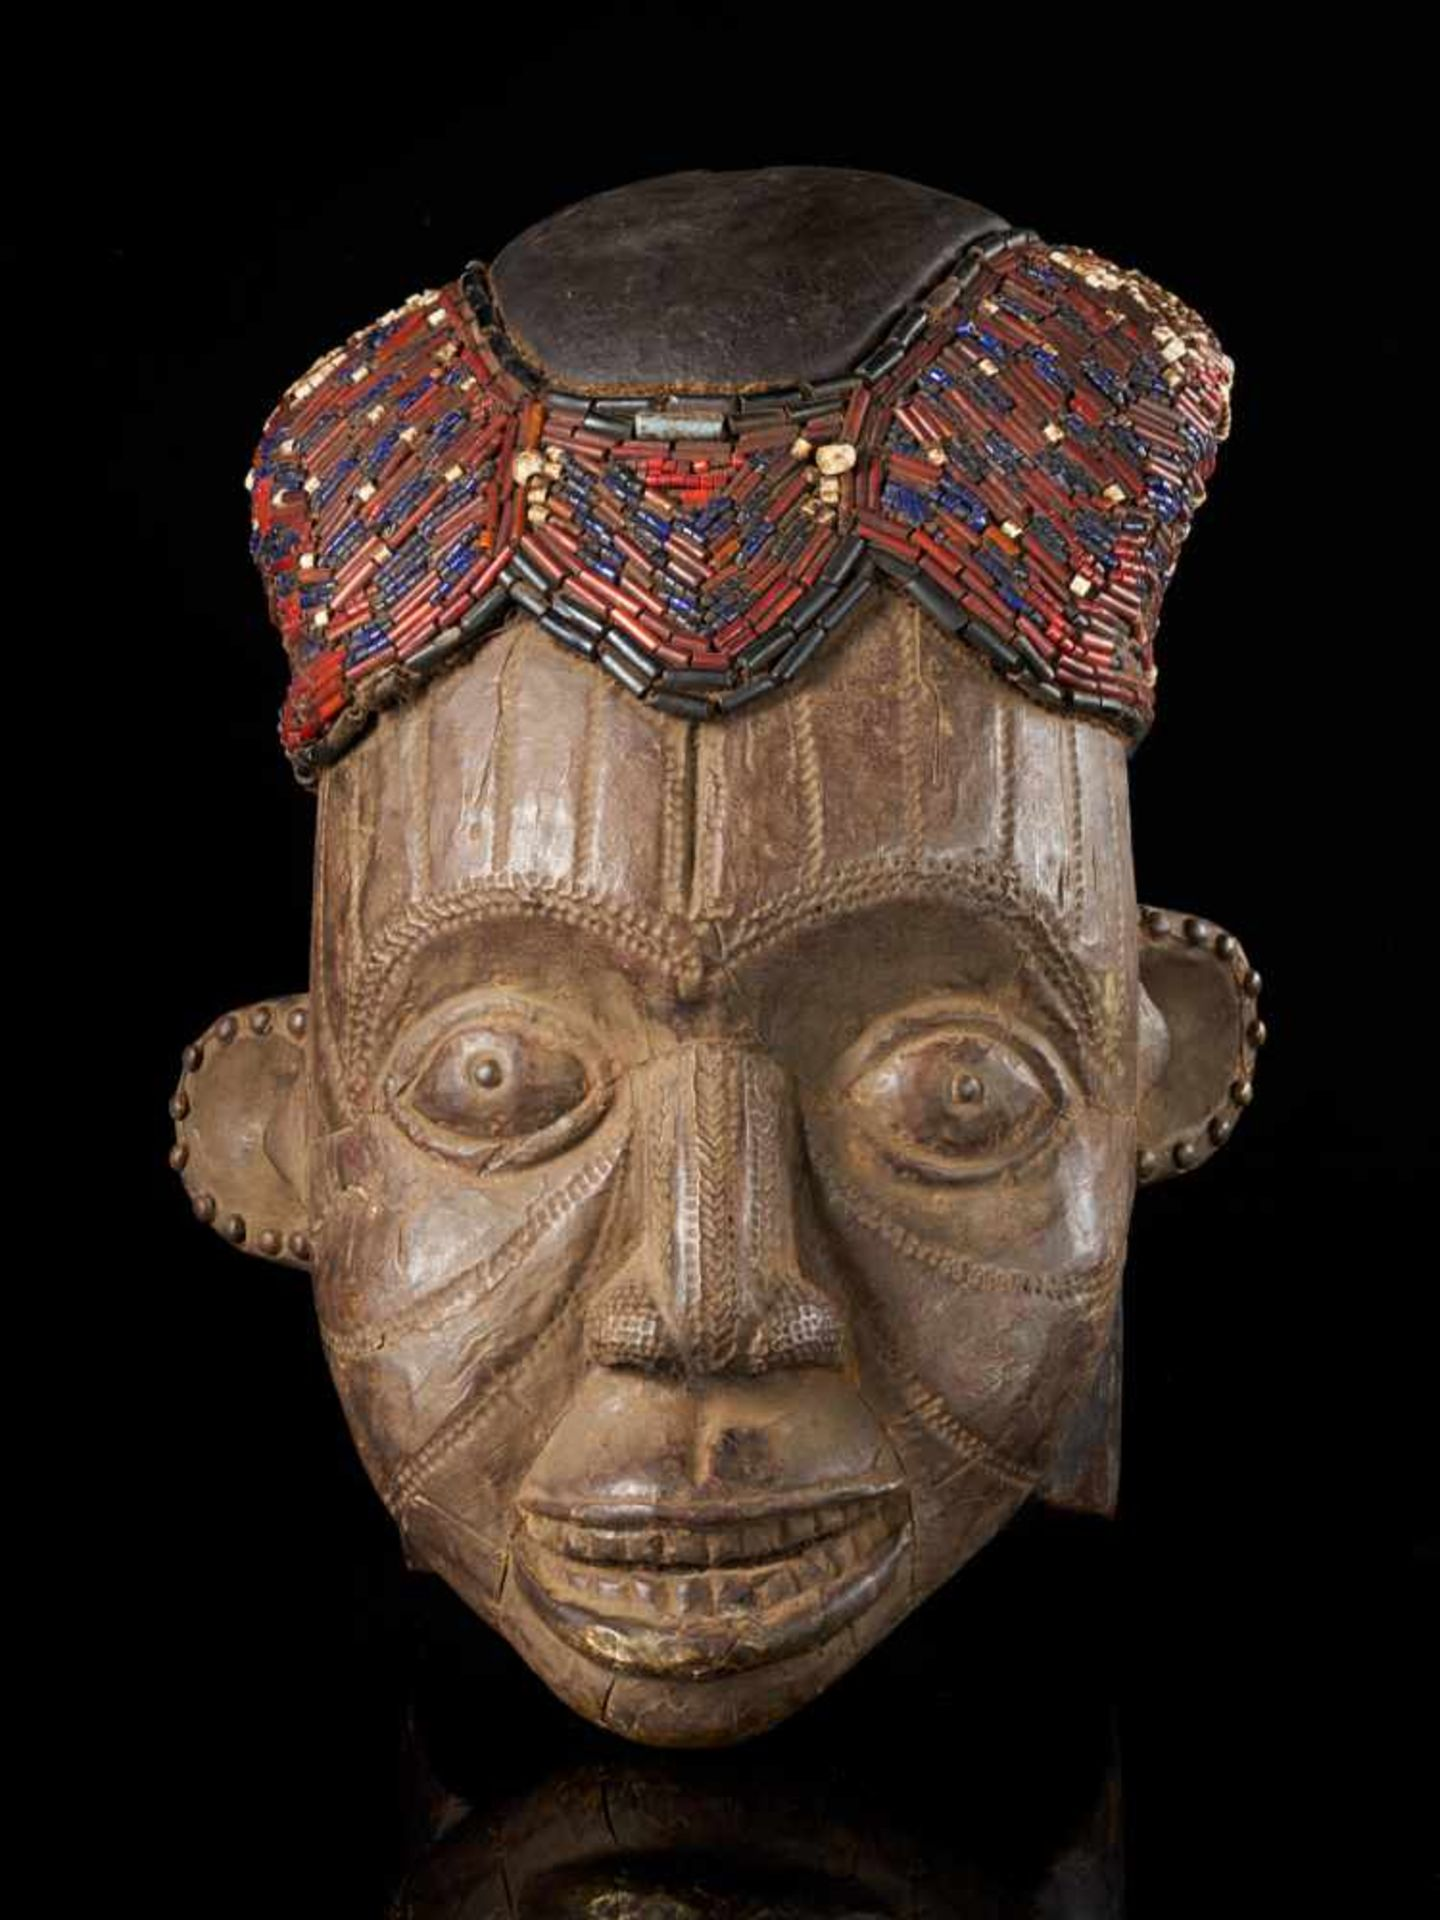 Beaded Helmet Mask - Copper Covered Face - Tribal ArtThis gorgeous wooden mask is detailed with a - Bild 5 aus 5